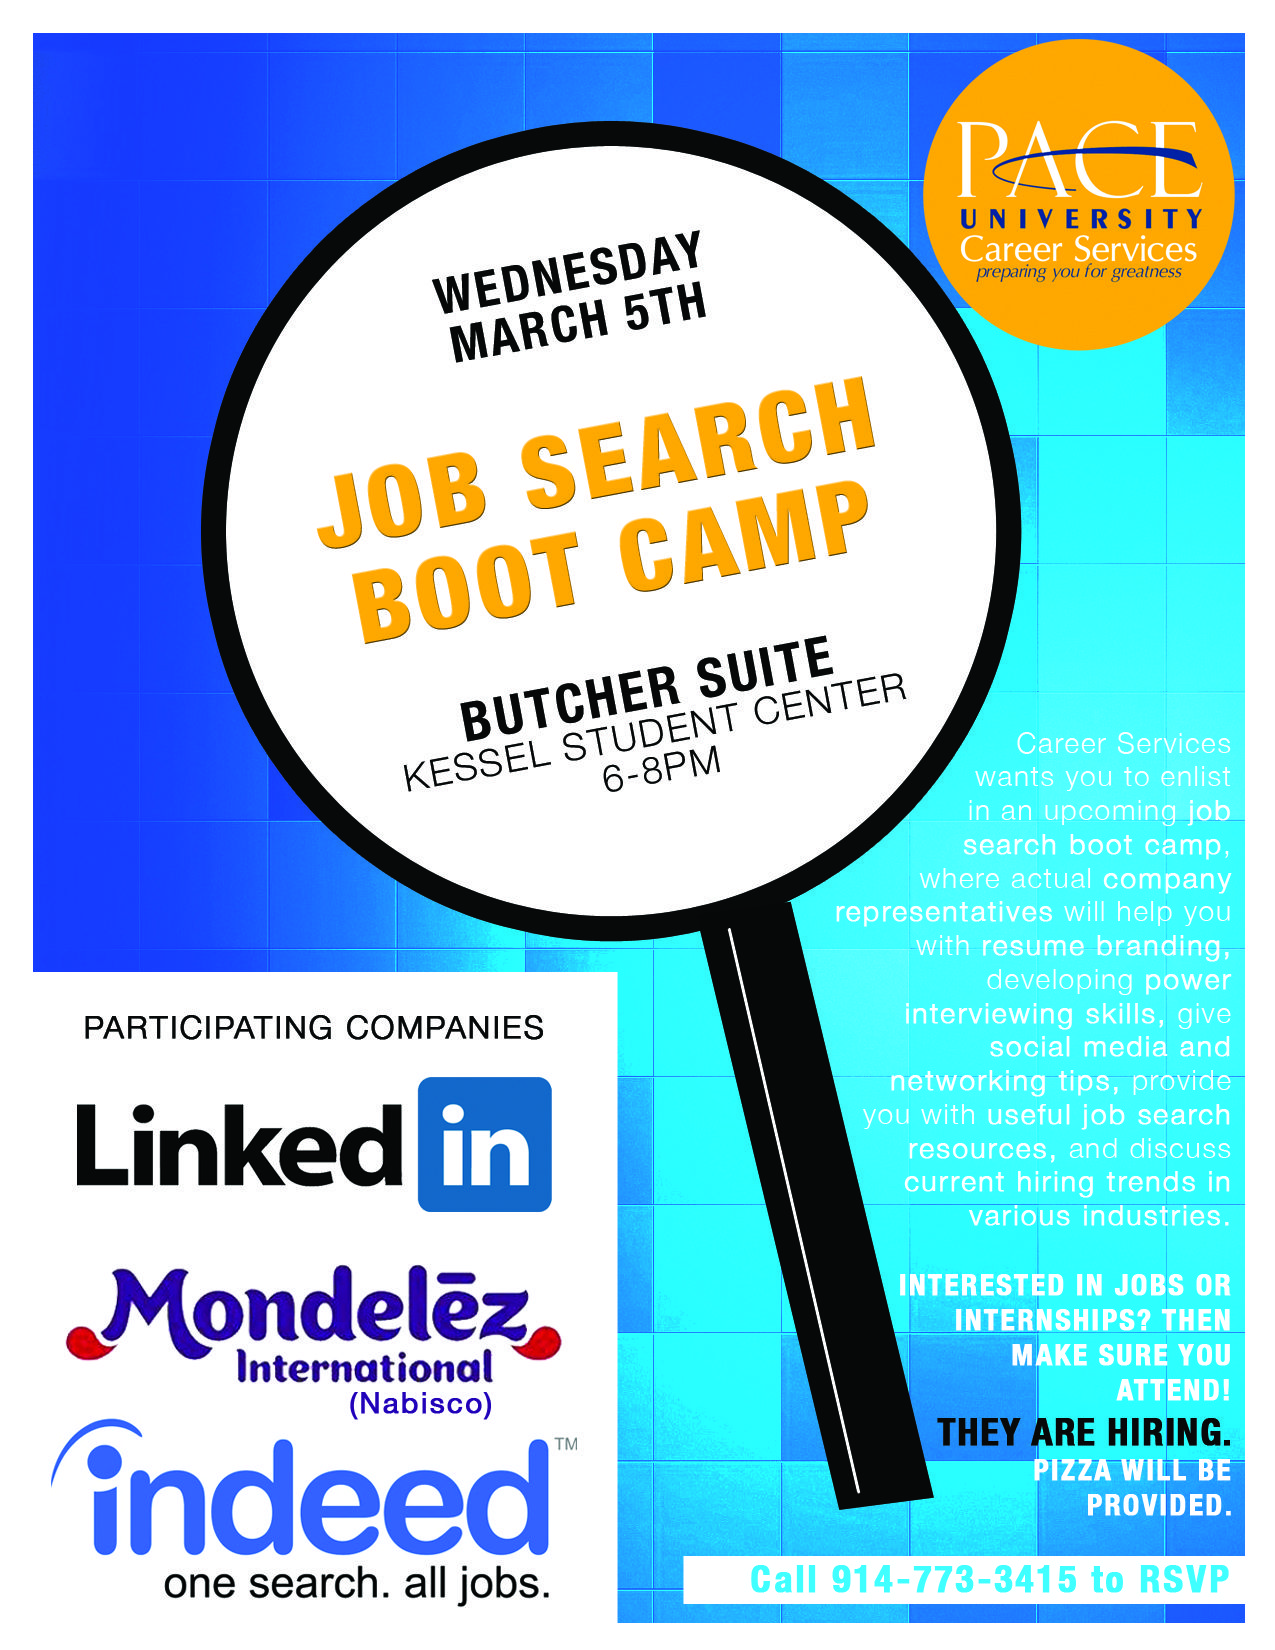 Job Search Boot Camp Butcher Suite Kessel Student Center 6 8pm Student Bootcamp Job Search